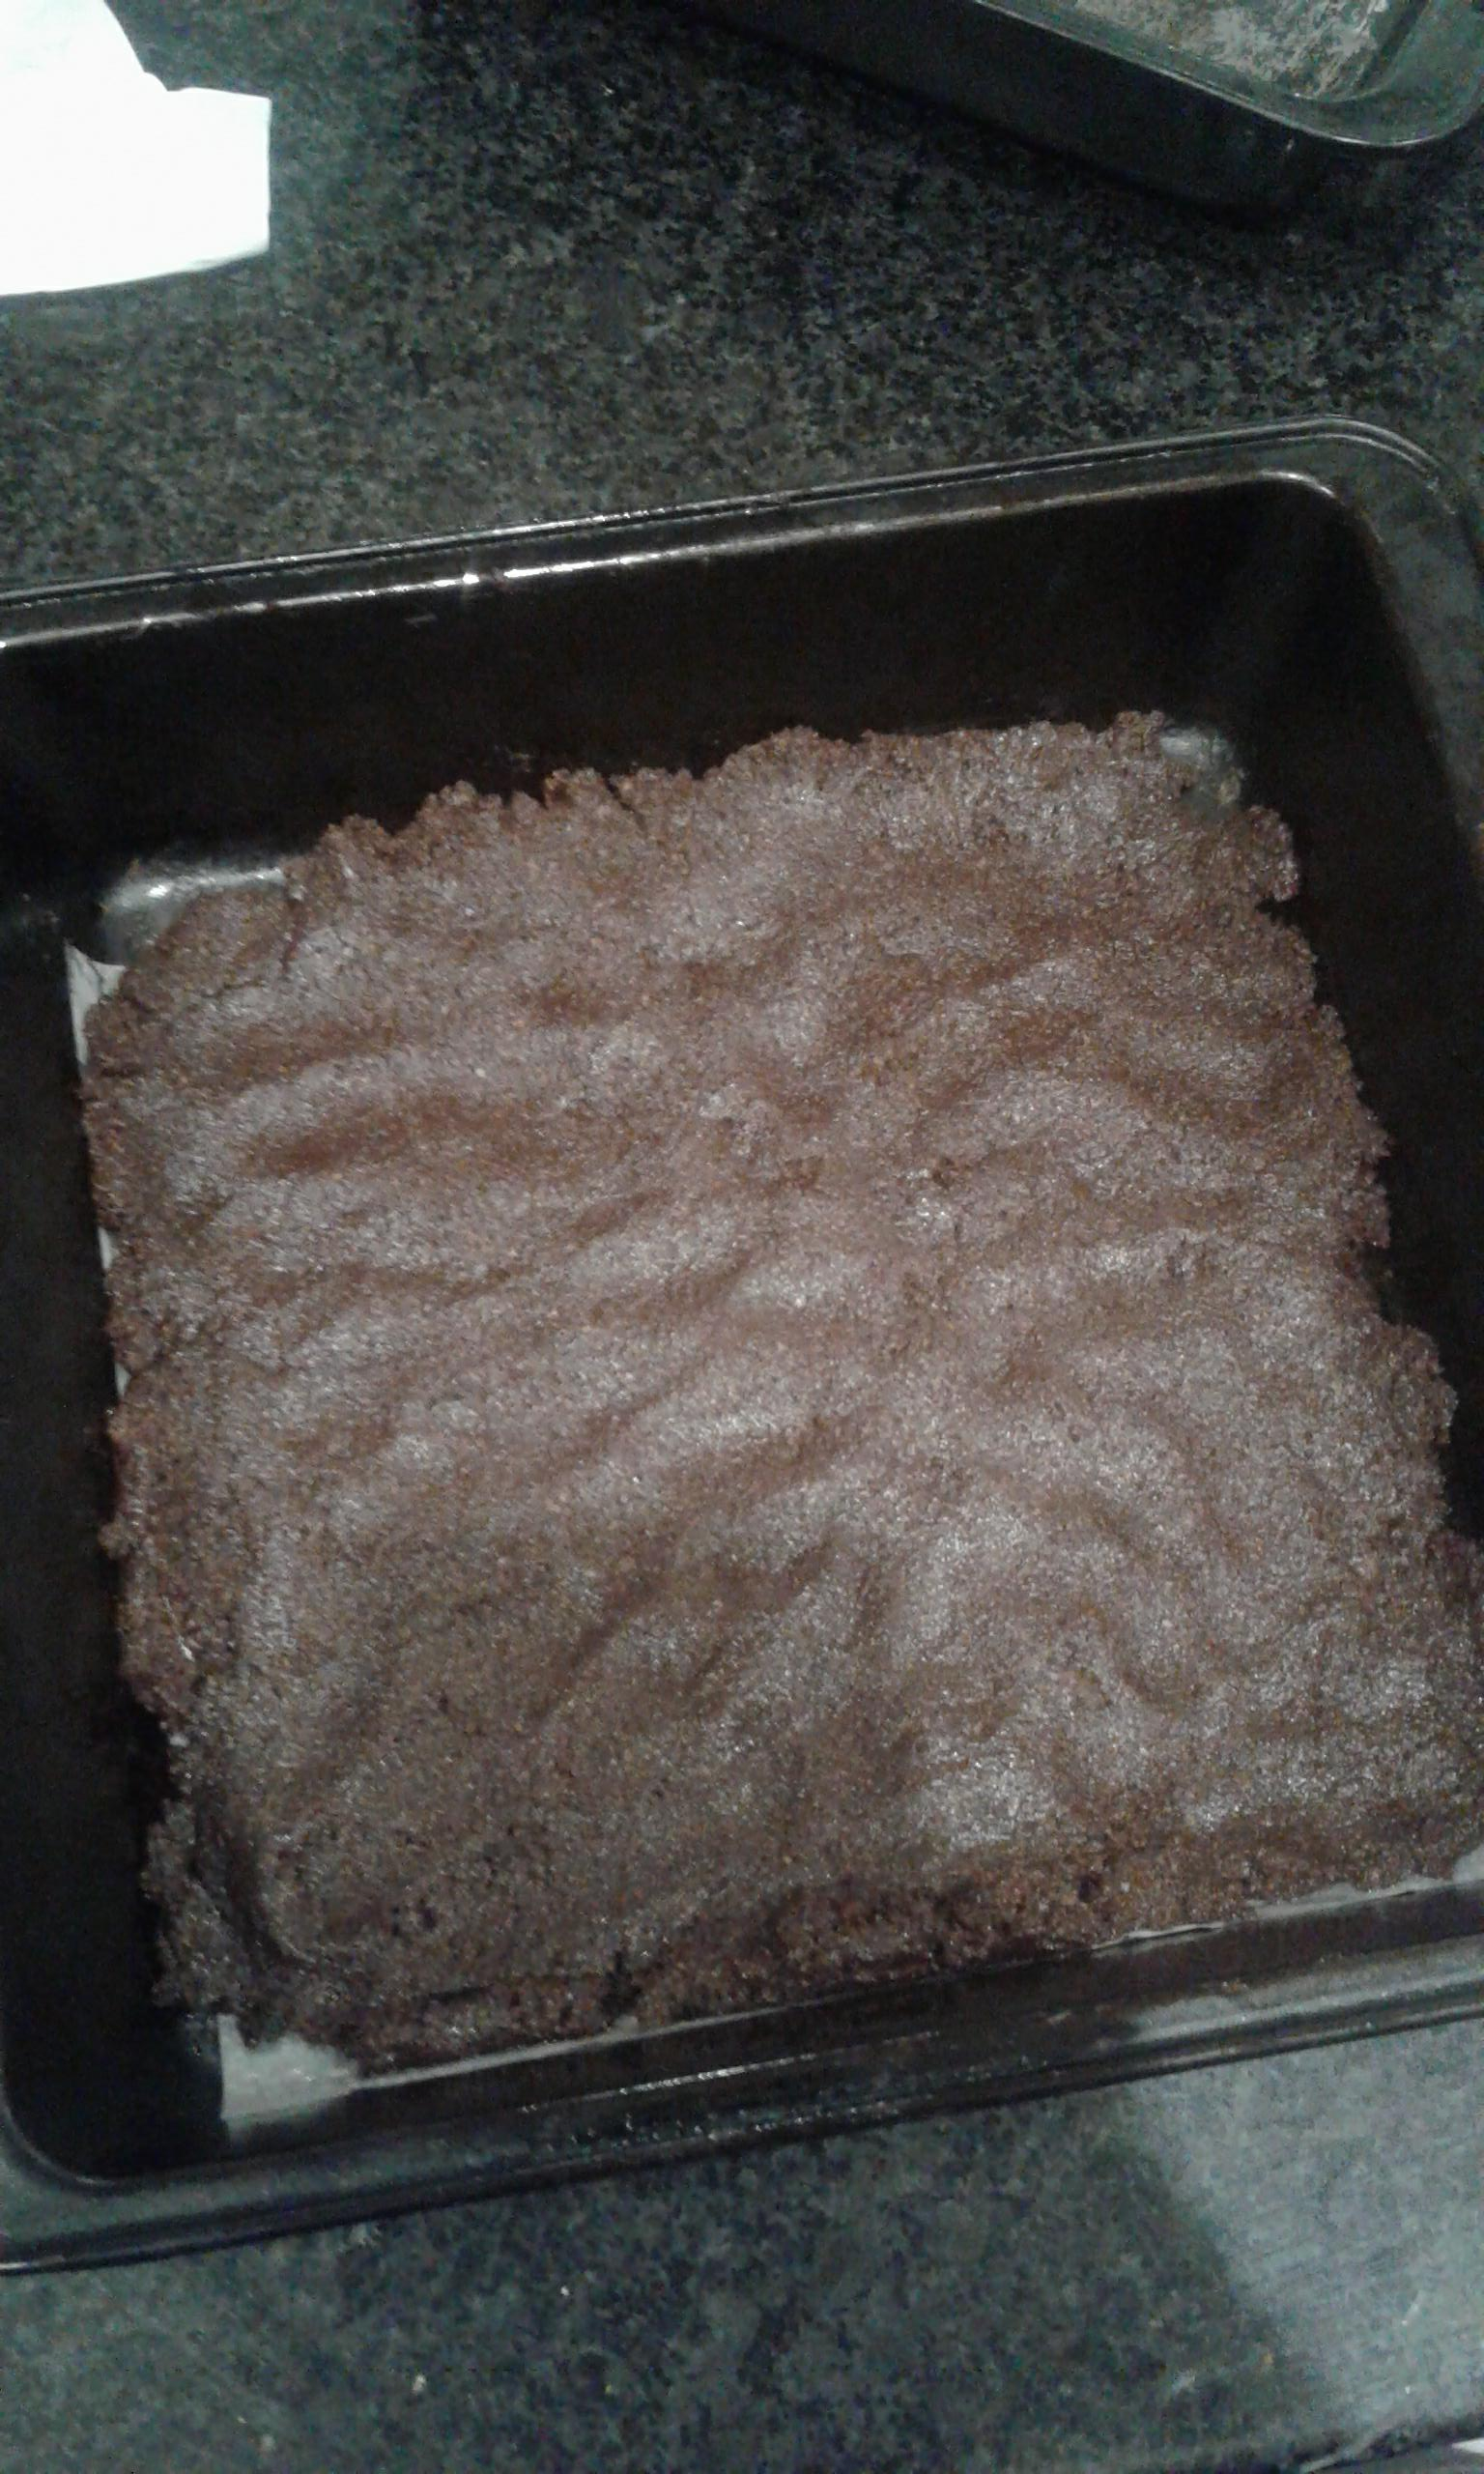 Baked cookie slab ready to turn into crumbs